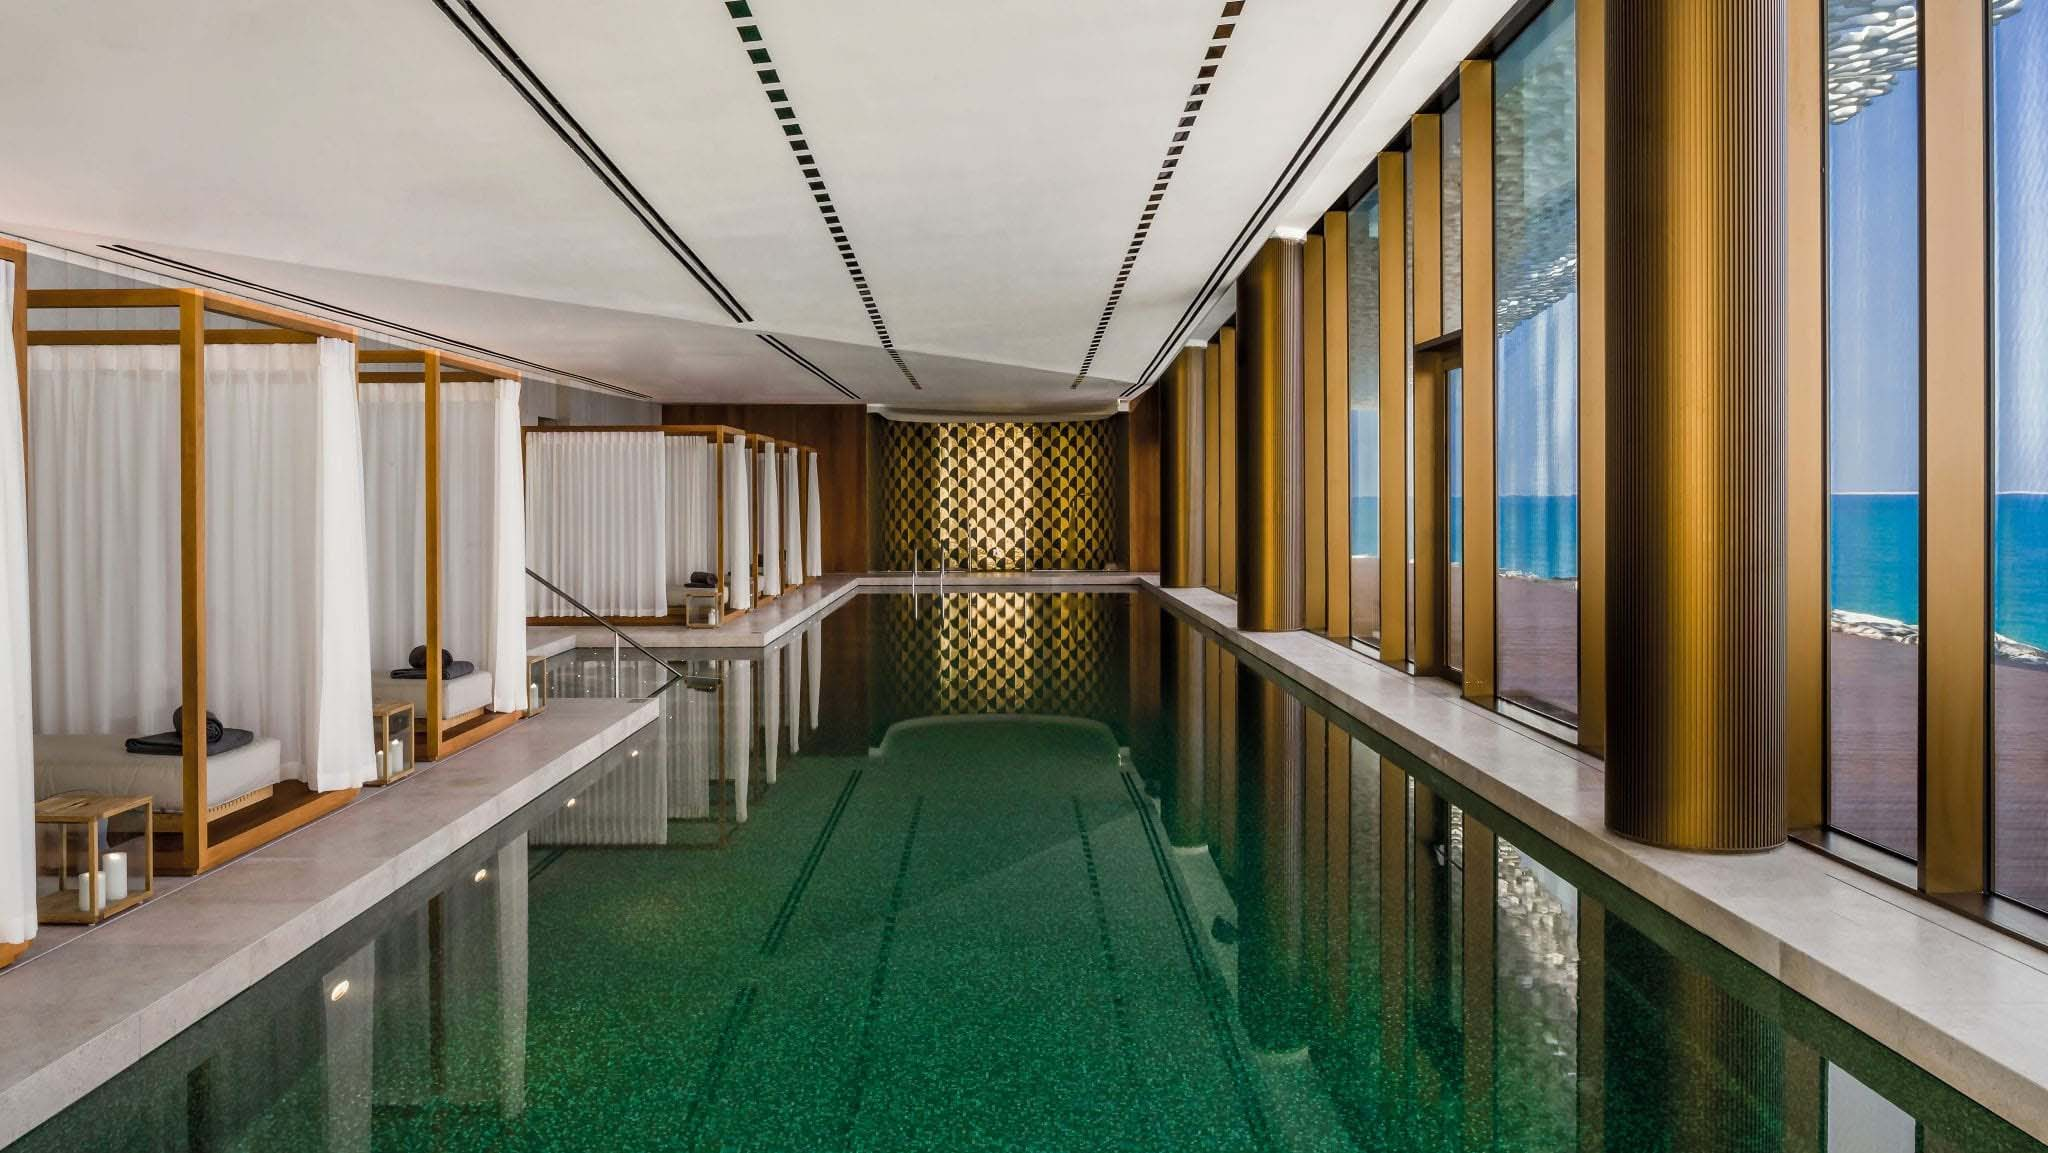 Bulgari Hotel in Dubai